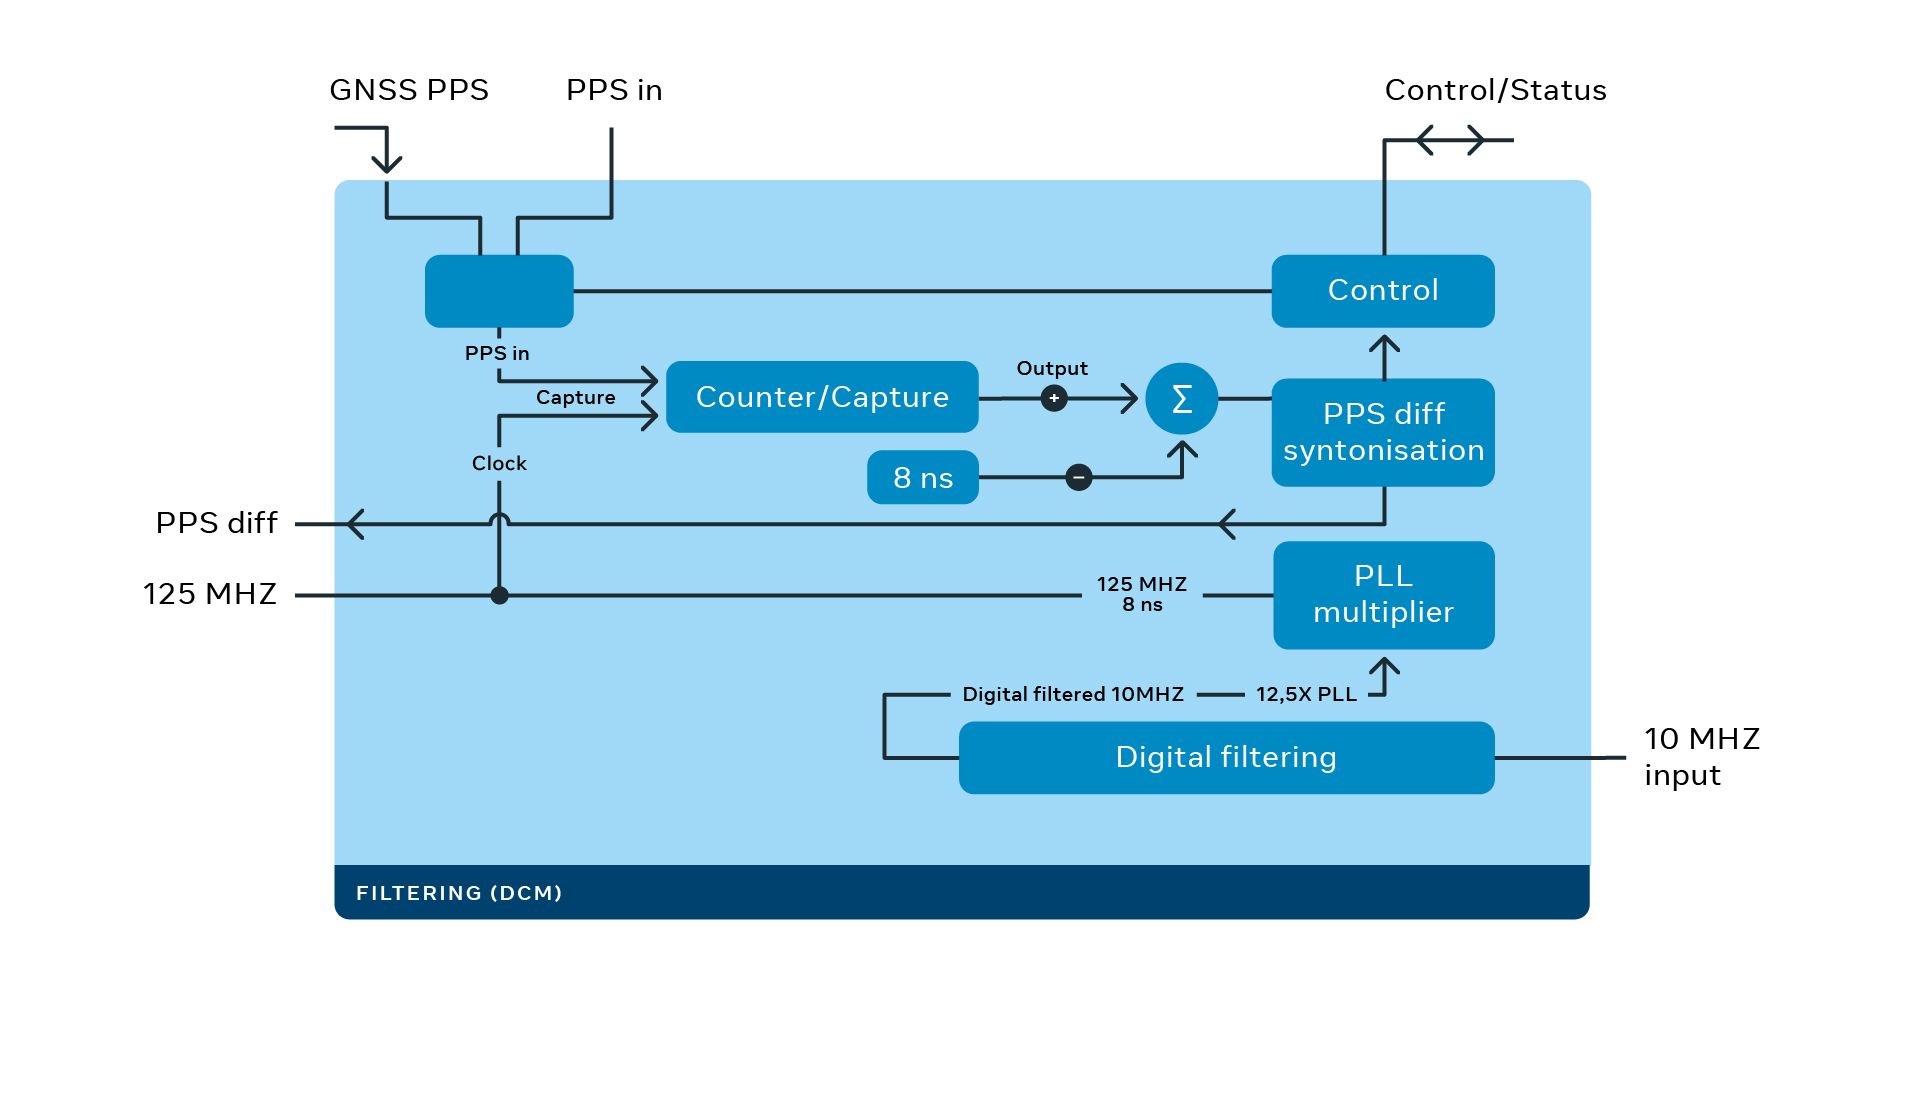 Block diagram showing the filtering process